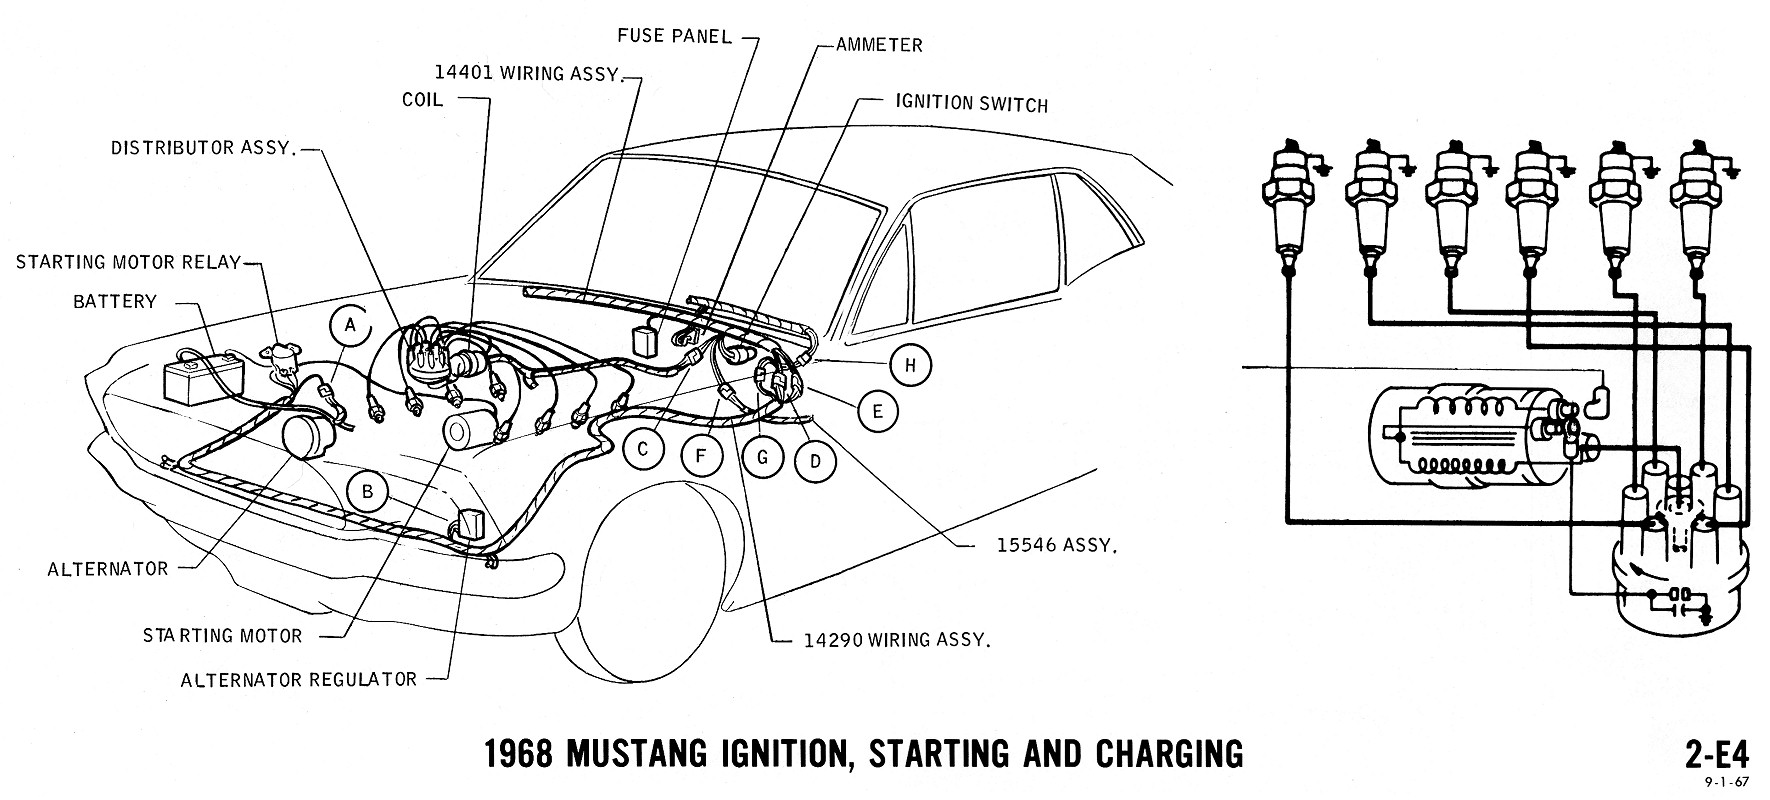 1968 mustang wiring diagram ignition starting charging 2 1968 mustang wiring diagrams and vacuum schematics average joe 1968 mustang ignition wiring diagram at n-0.co